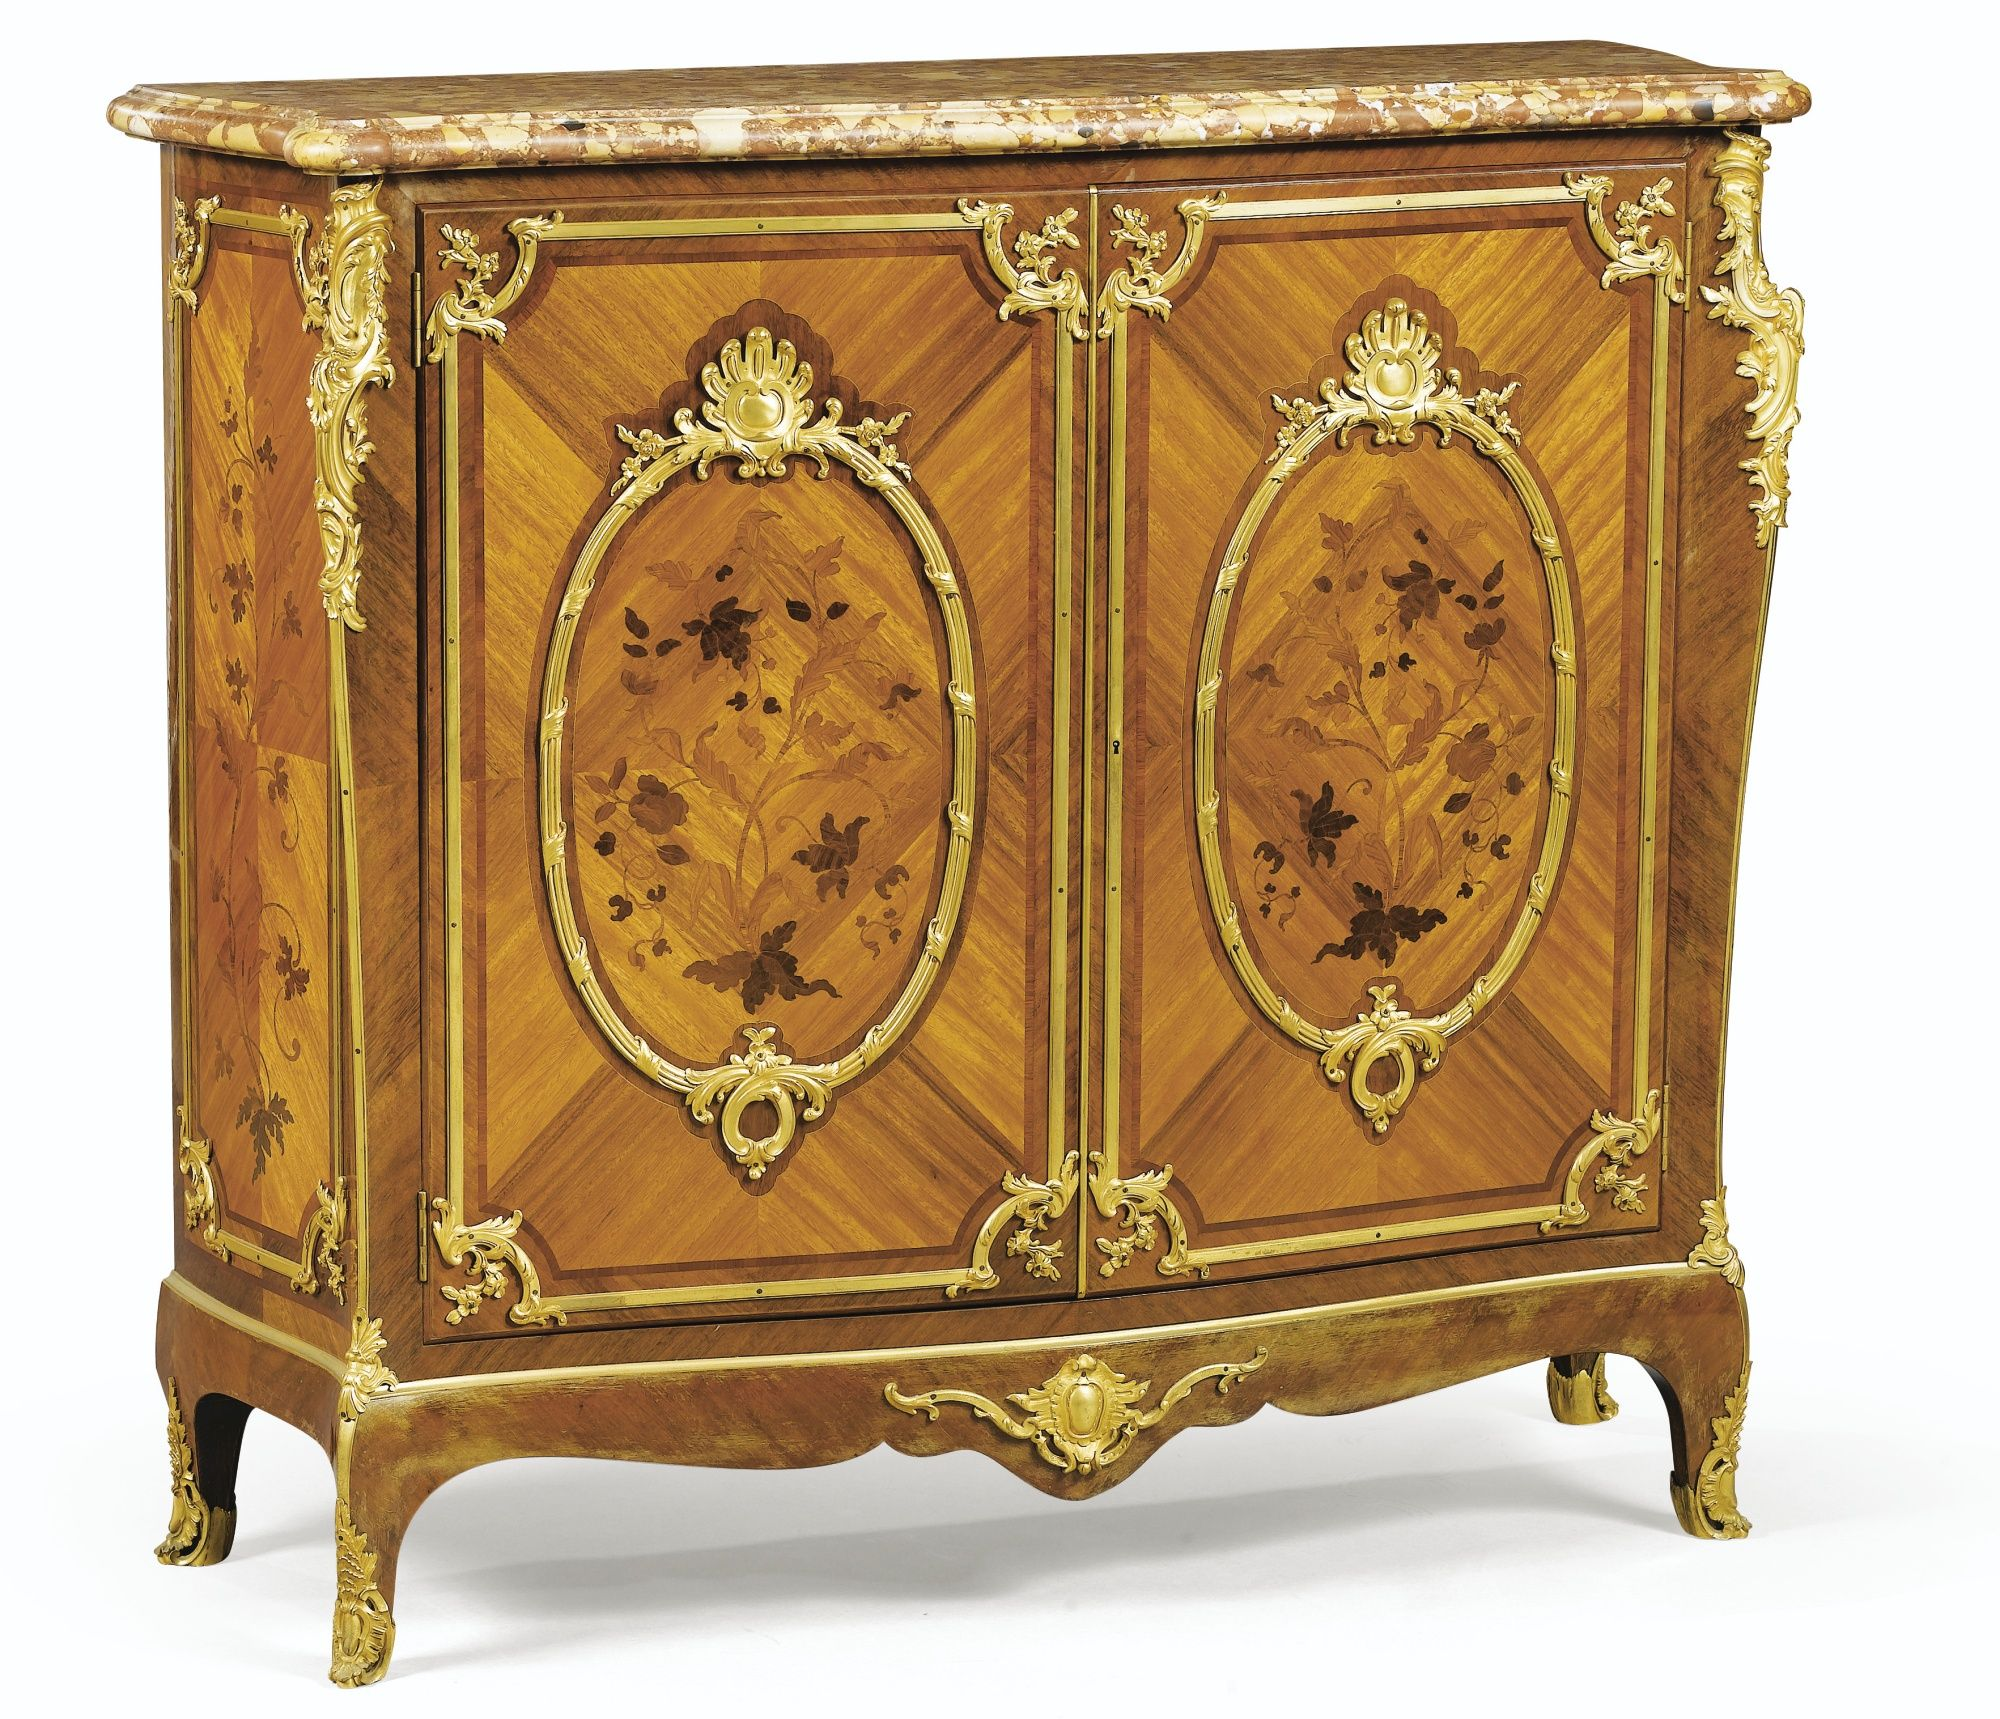 gervais maximilien eug ne durand 1839 1920 a louis xv style giltbronze m bel pinterest. Black Bedroom Furniture Sets. Home Design Ideas